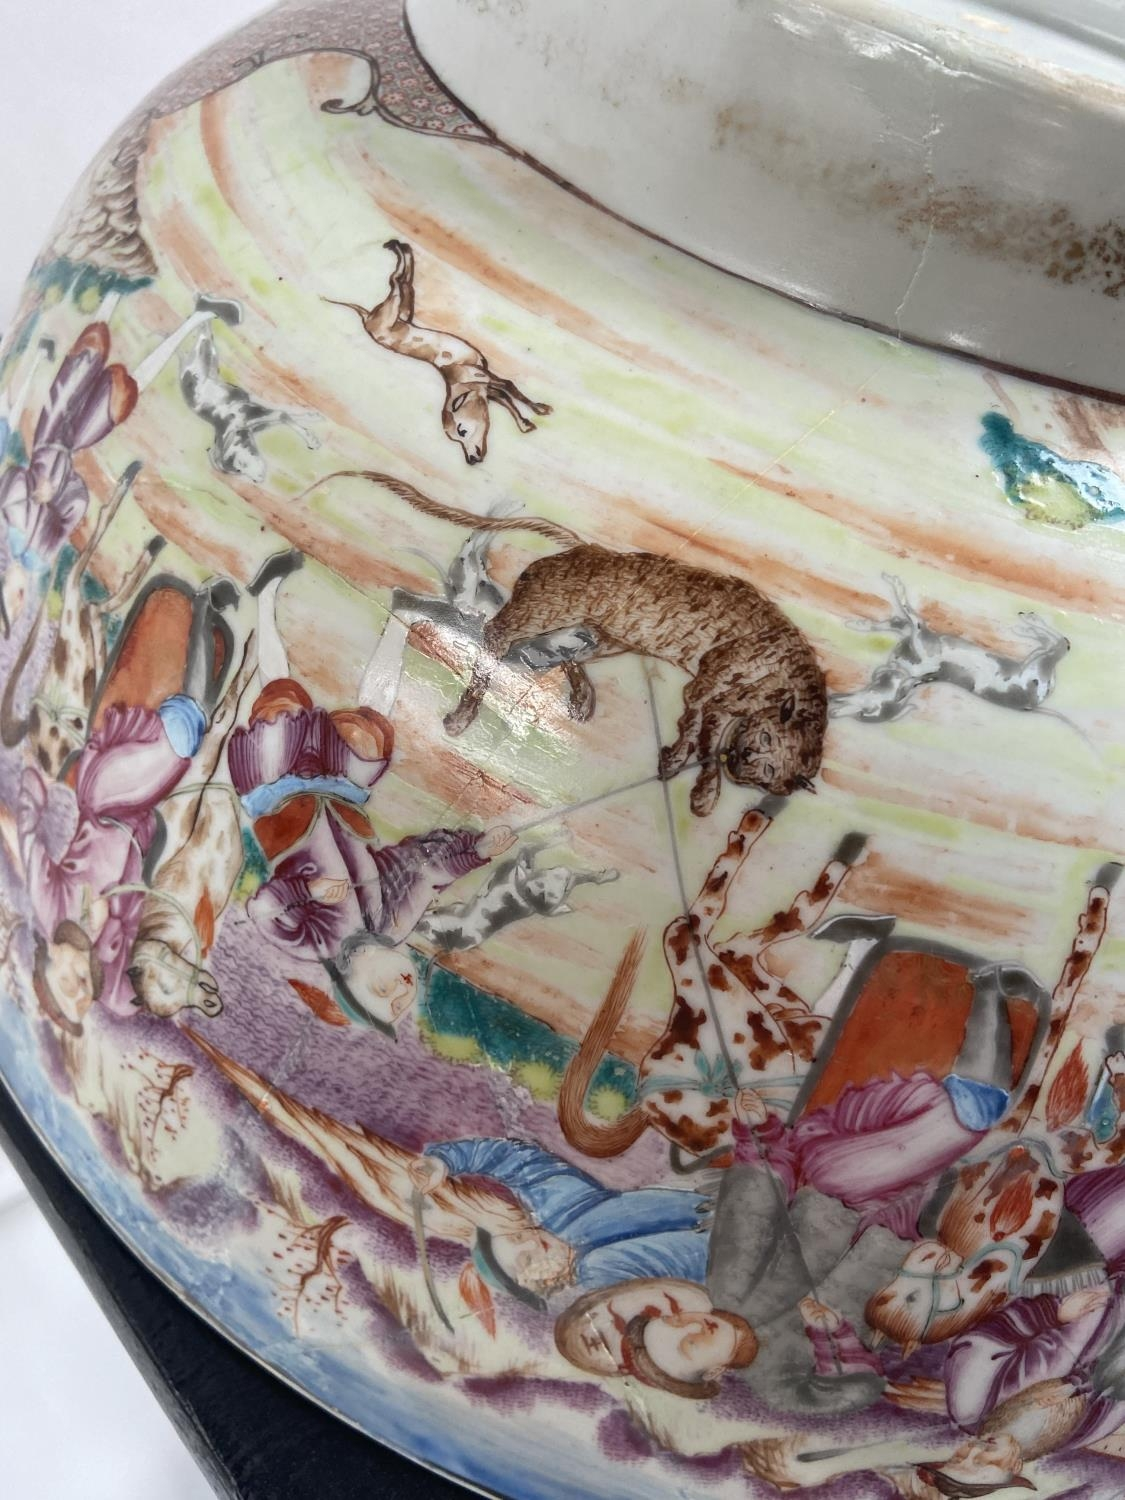 A LARGE 19TH CENTURY CHINESE HAND PAINTED BOWL. EXTERIOR DEPICTS CHINESE HUNTING SCENE PANELS. THE - Image 35 of 39